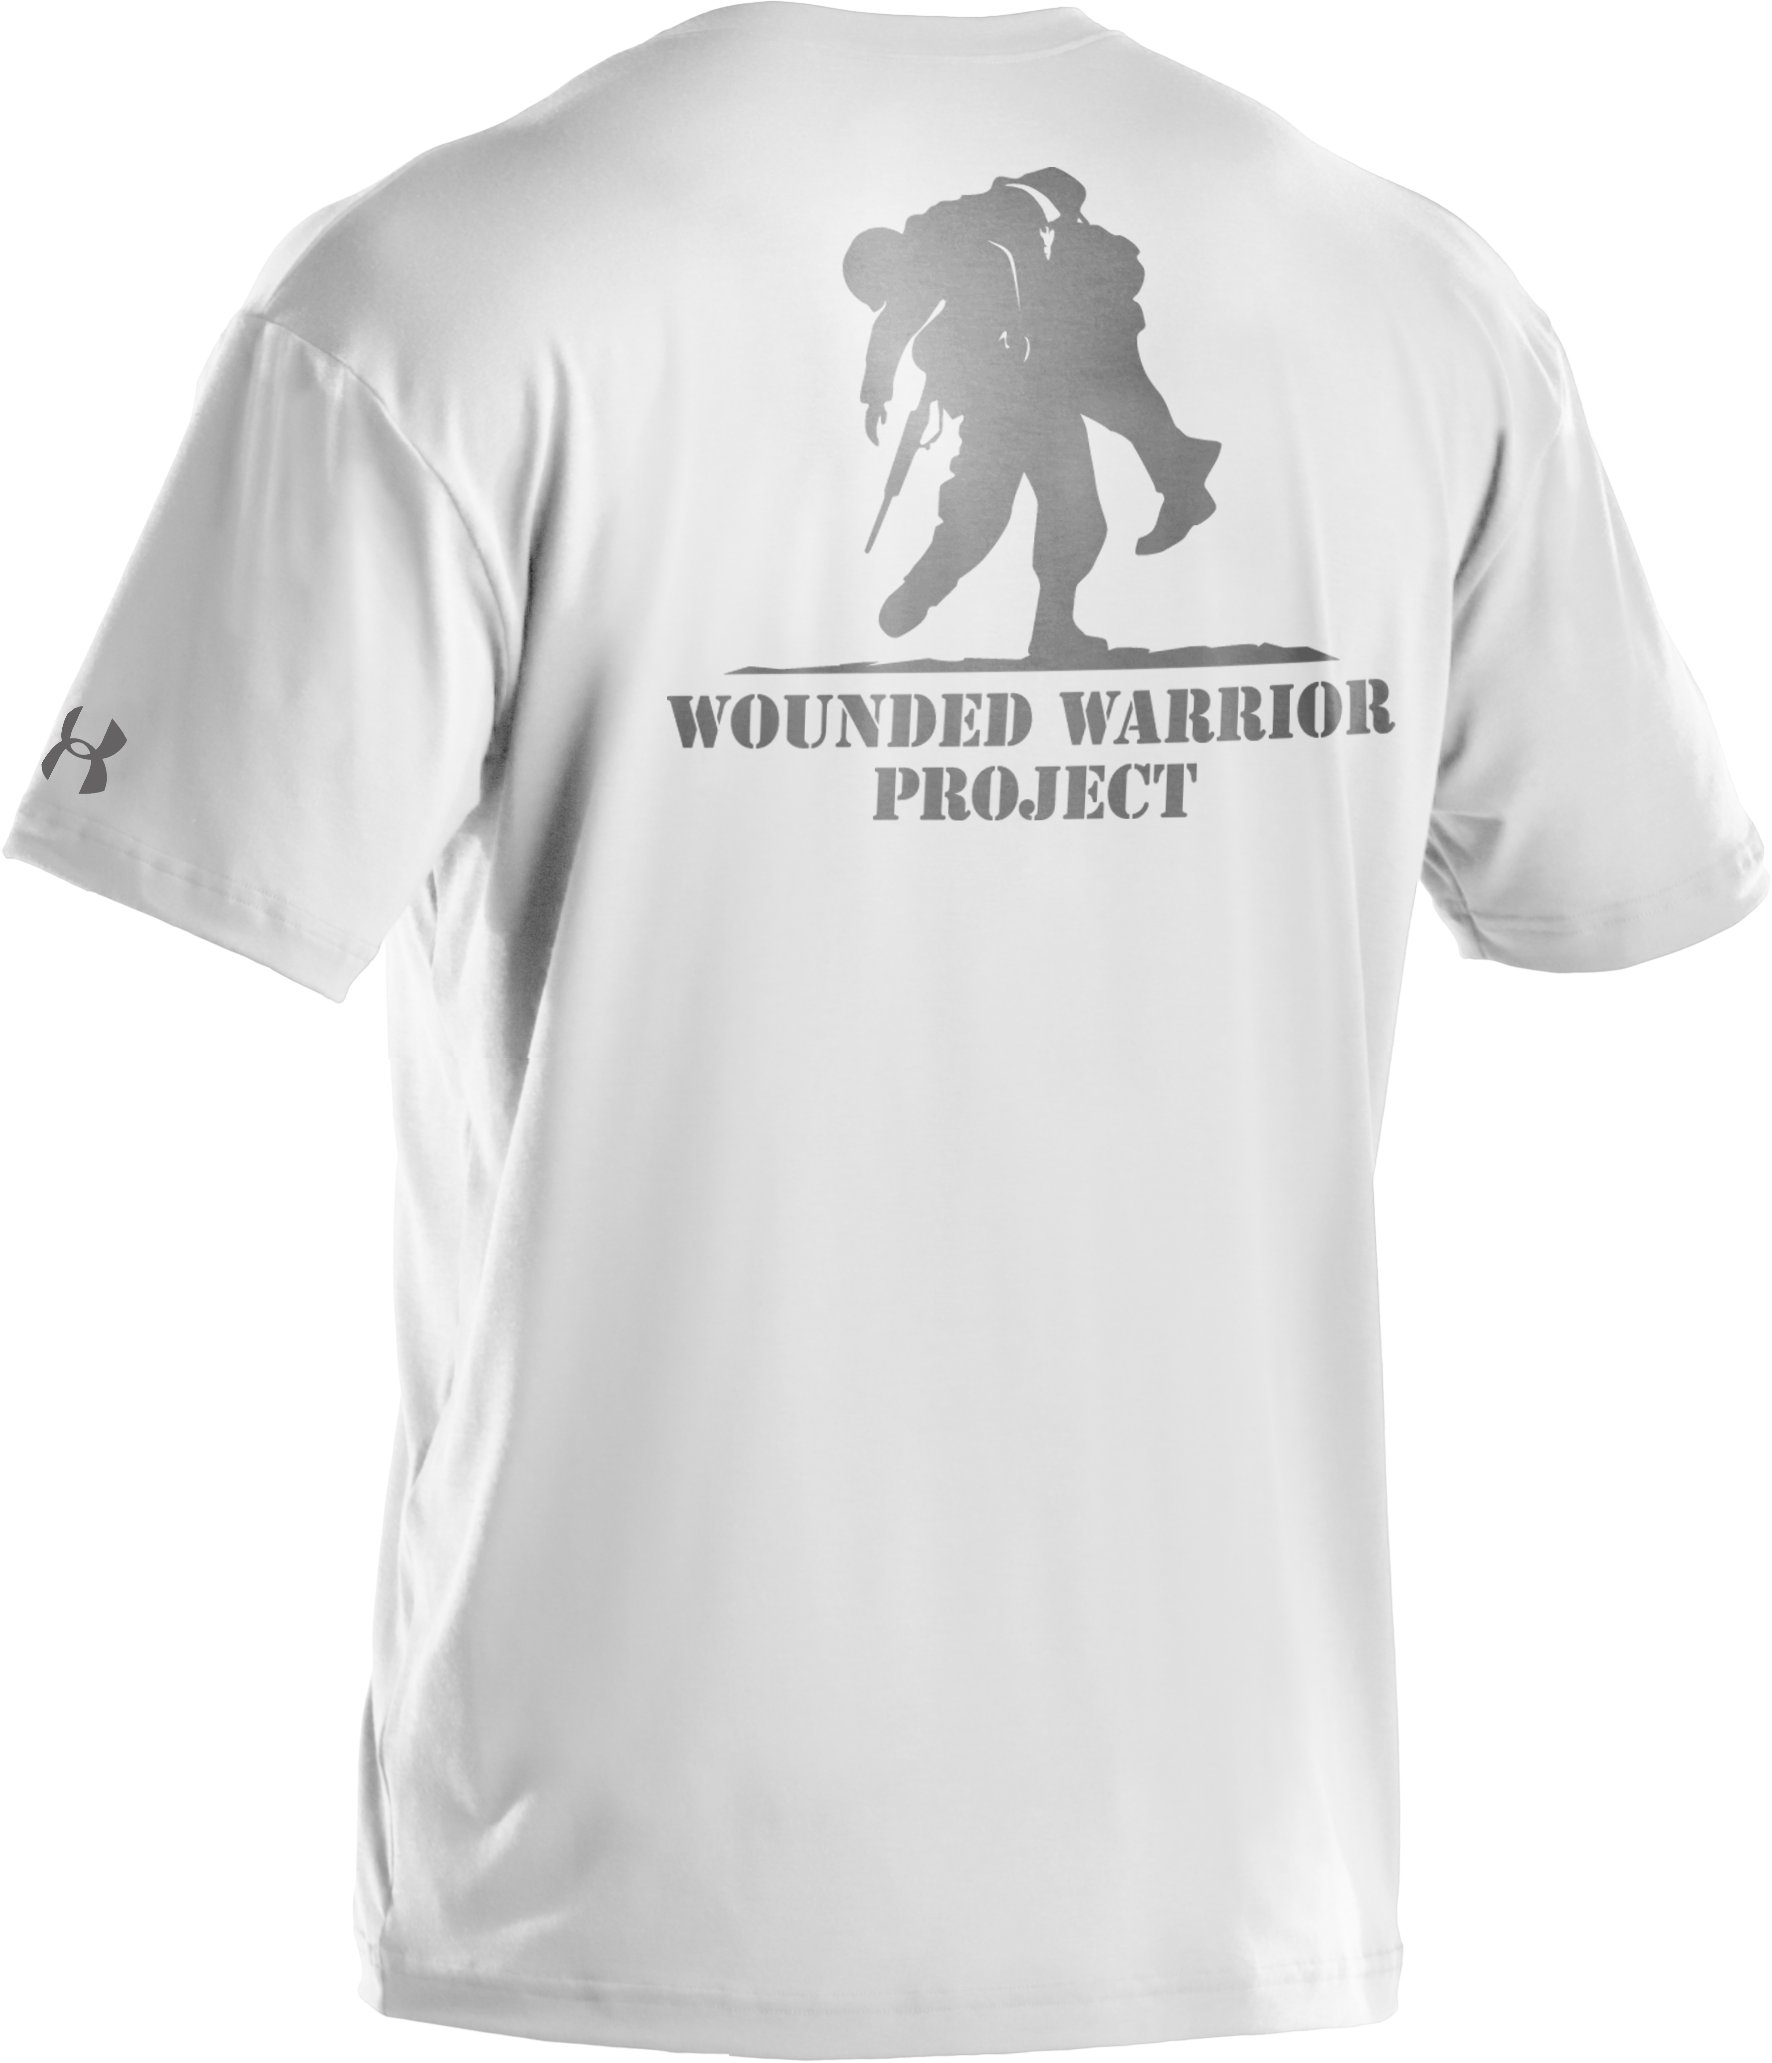 Men's WWP Graphic Short Sleeve T-Shirt, White,